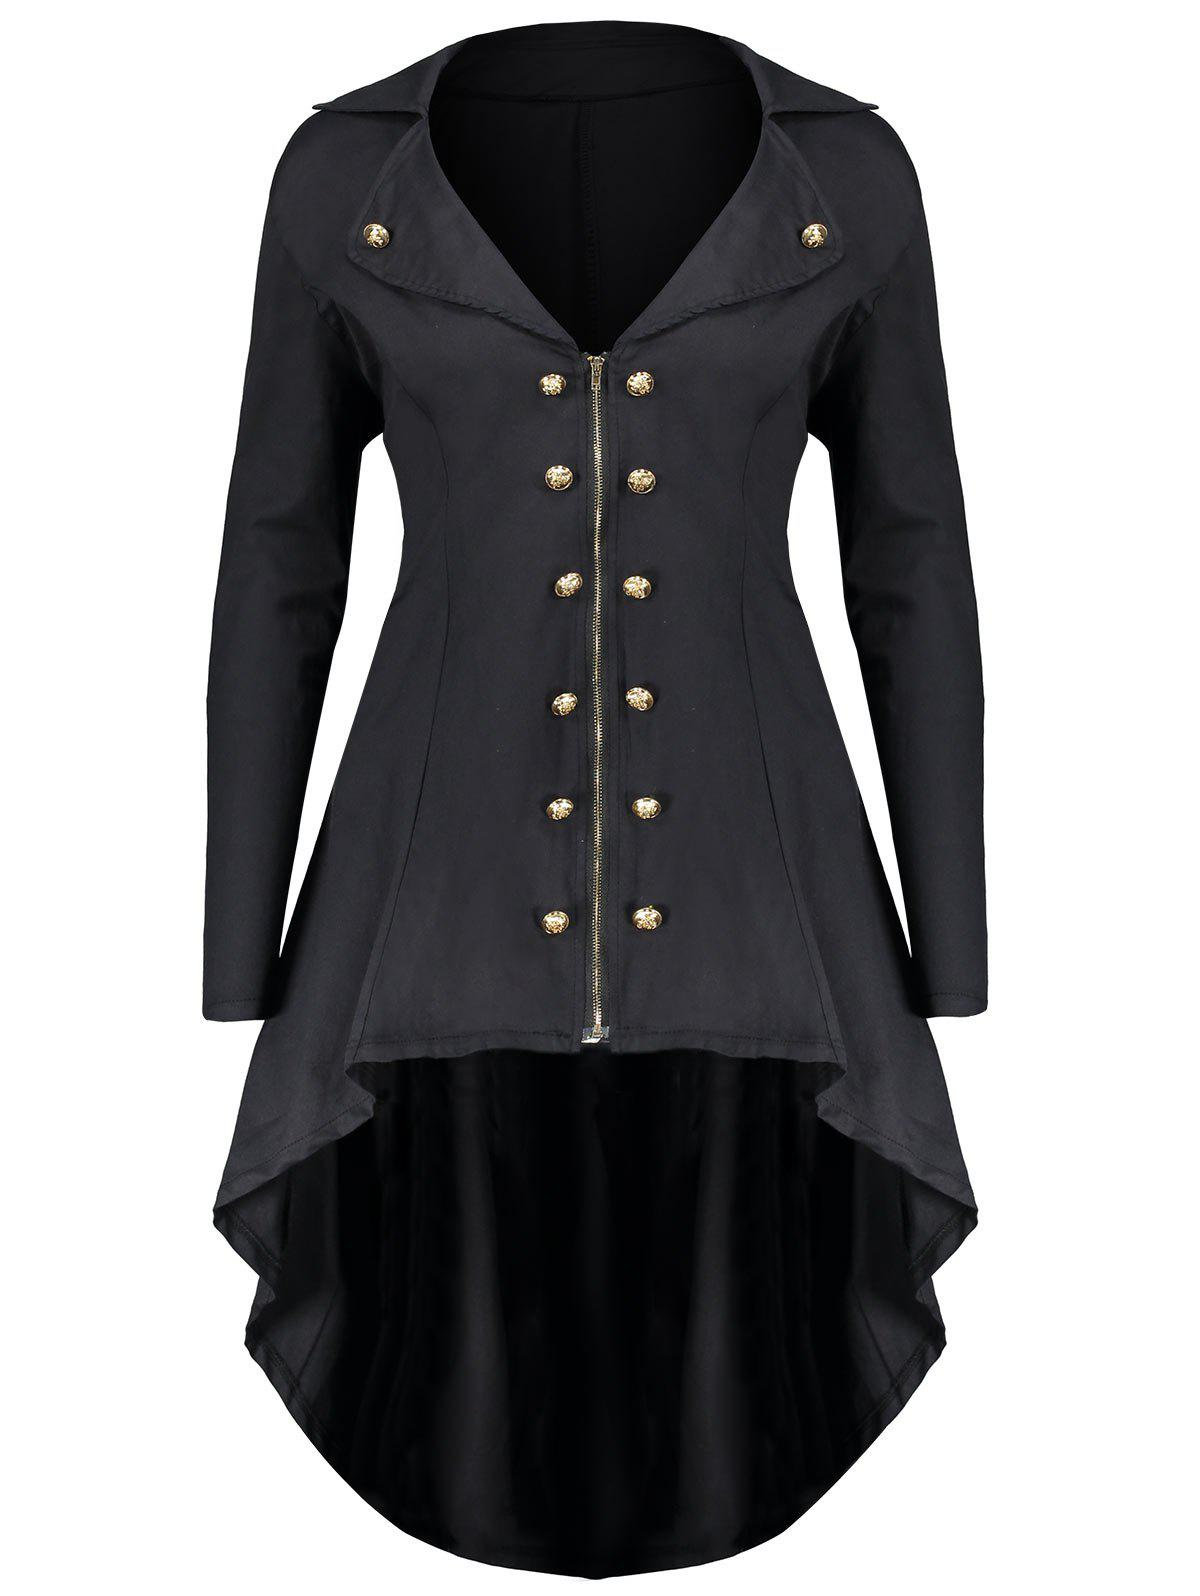 Lapel Double Breast Plus Size High Low CoatWOMEN<br><br>Size: 2XL; Color: BLACK; Clothes Type: Others; Material: Polyester,Spandex; Type: Asymmetric Length; Shirt Length: Long; Sleeve Length: Full; Collar: Lapel; Pattern Type: Solid; Embellishment: Button,Zippers; Style: Fashion; Season: Fall,Winter; Weight: 0.5200kg; Package Contents: 1 x Coat;